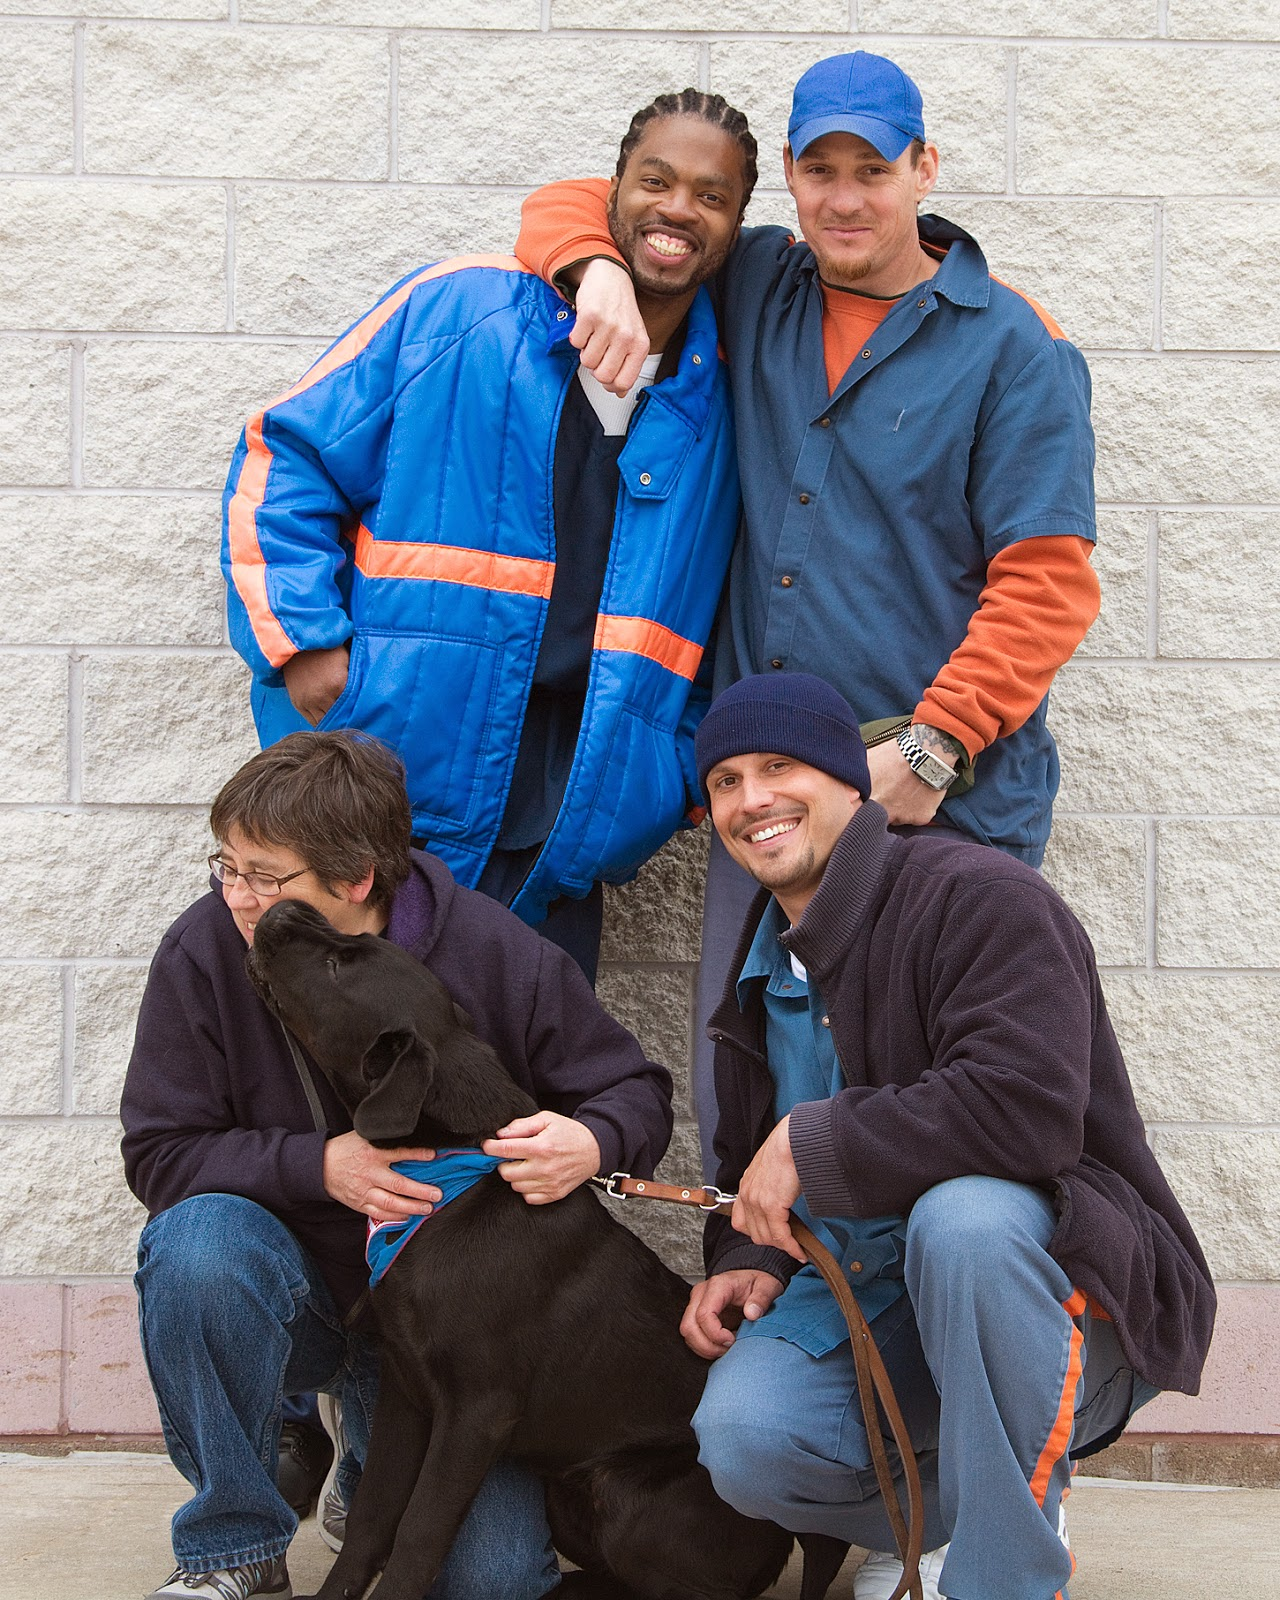 The same group in this picture, but now the man standing on the right in back has his right arm around the african american's neck. The black lab puppy is licking the face of the woman, who is turning her head to the left. The three men are looking at the camera wtih big smiles.